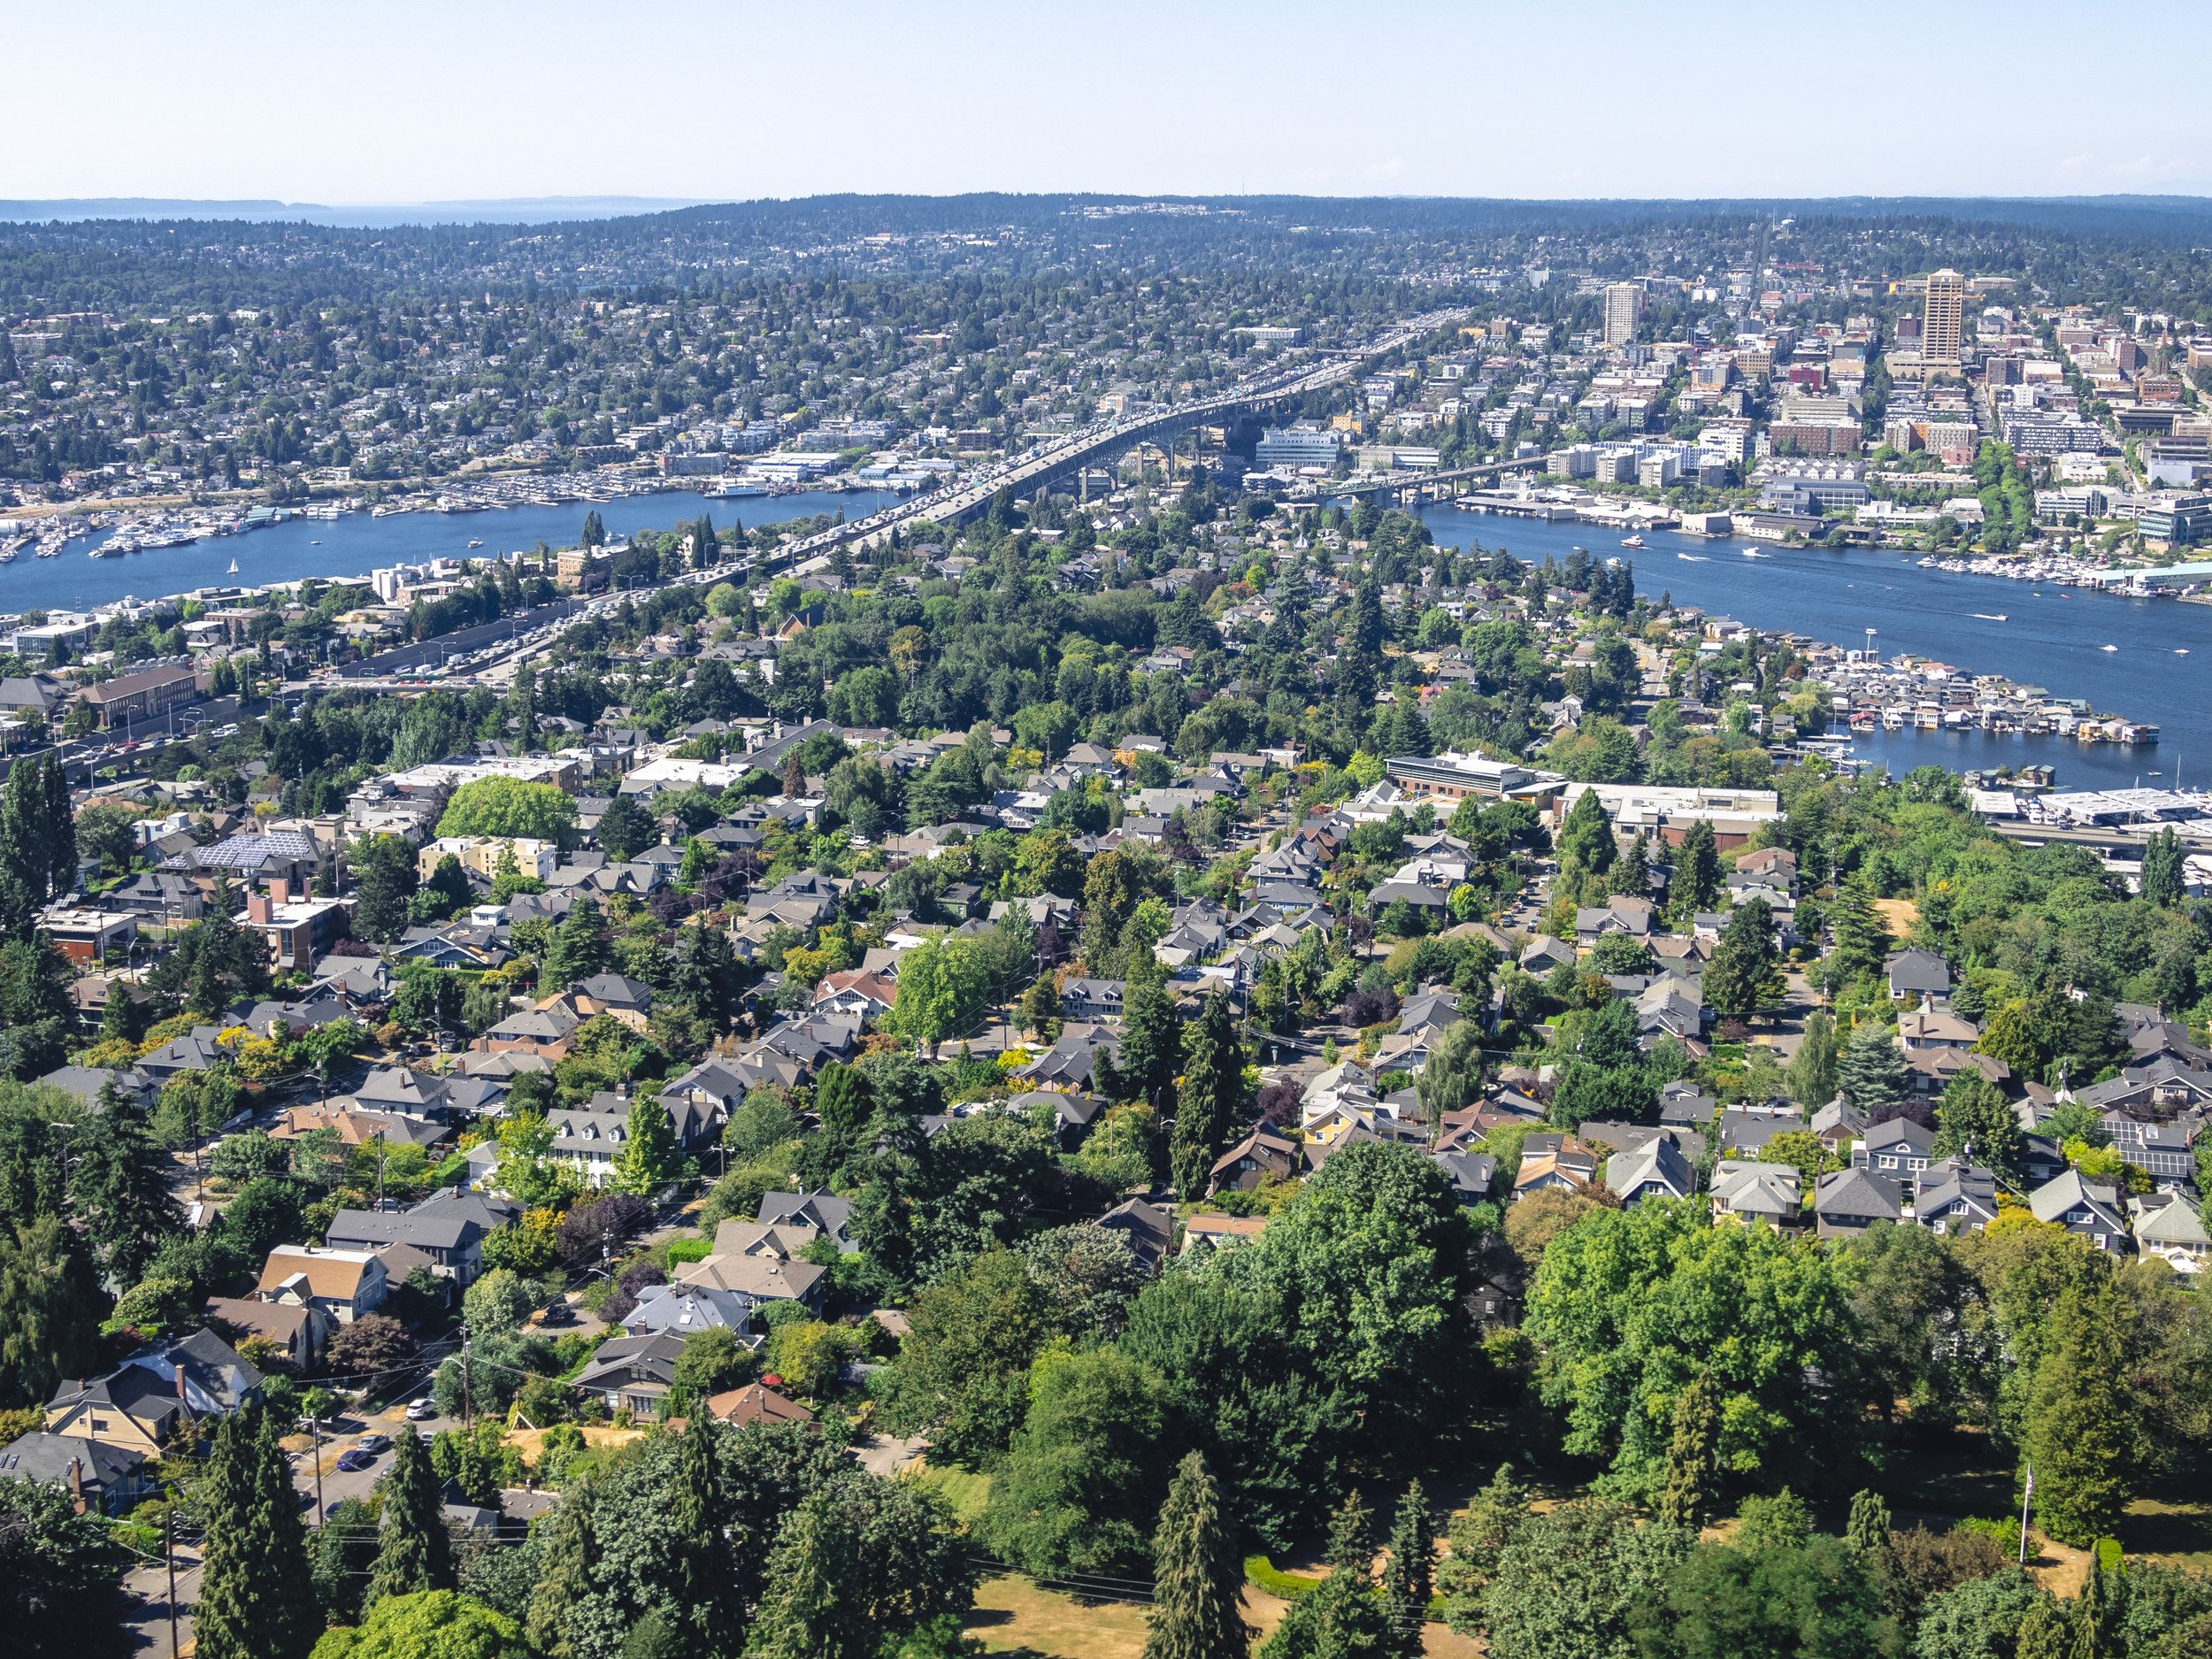 Washington_Evergreen_State_City_Neighborhoods_Aerial_Background.jpg